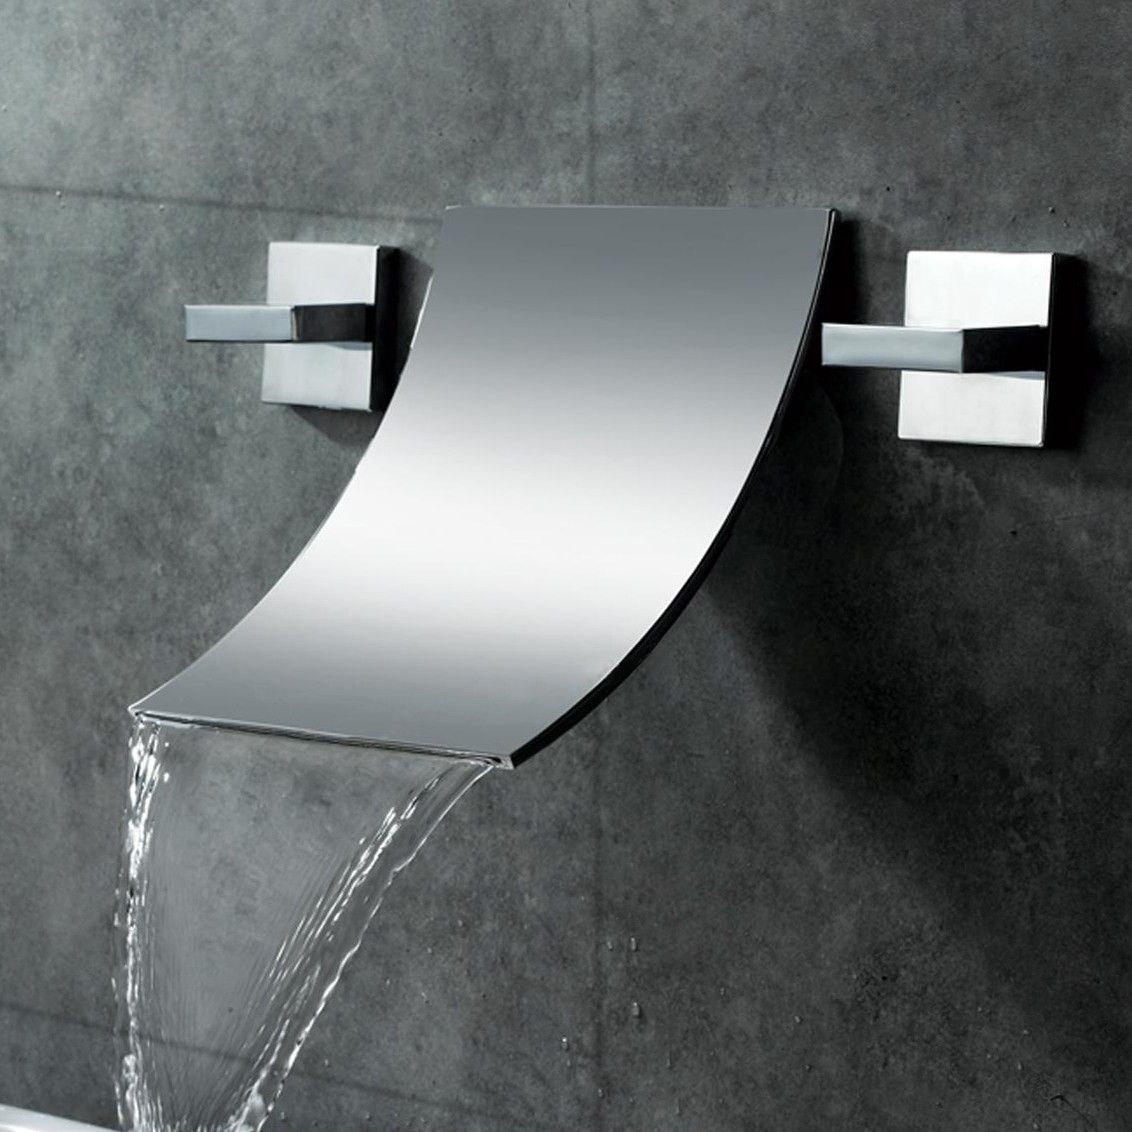 Wall Bathroom Faucet This Waterfall Wall Mounted Bathroom Sink Faucet Will Brighten Up